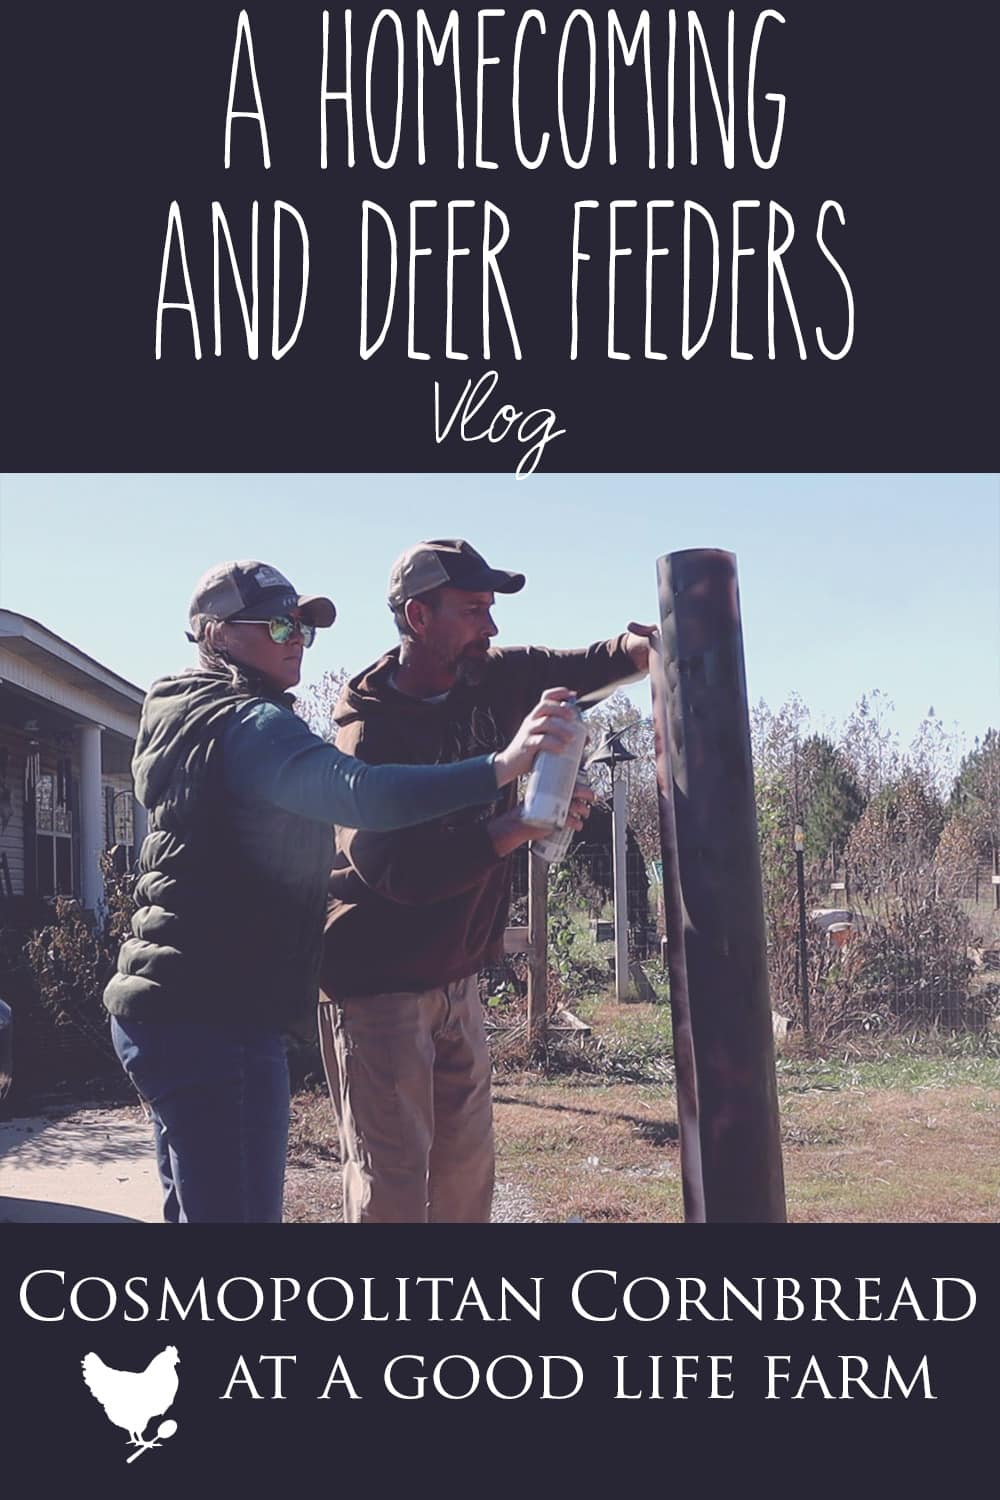 A Homecoming and Deer Feeders